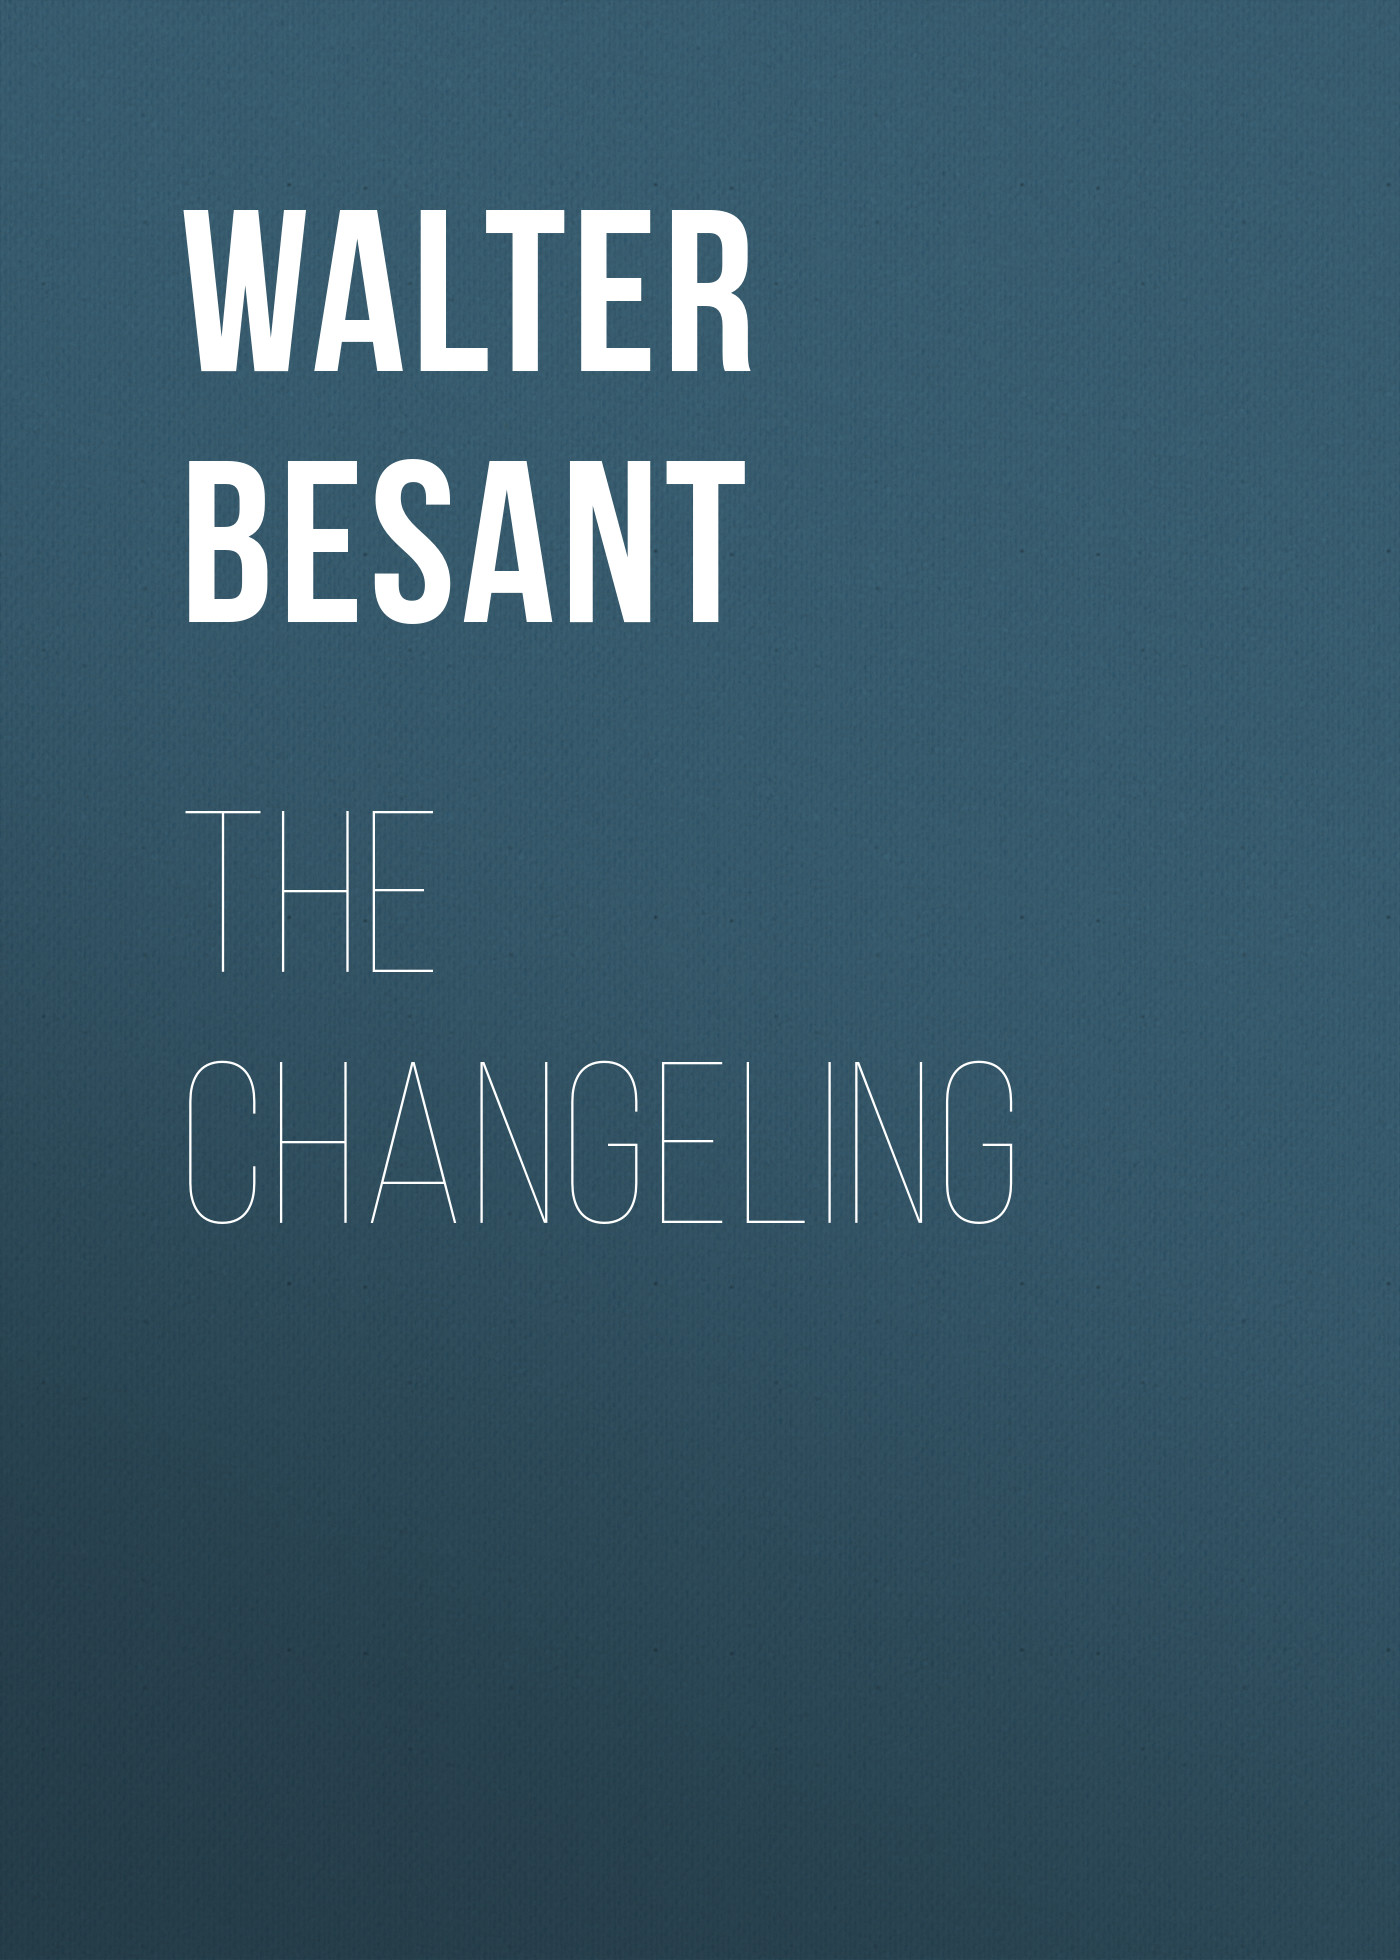 Walter Besant The Changeling